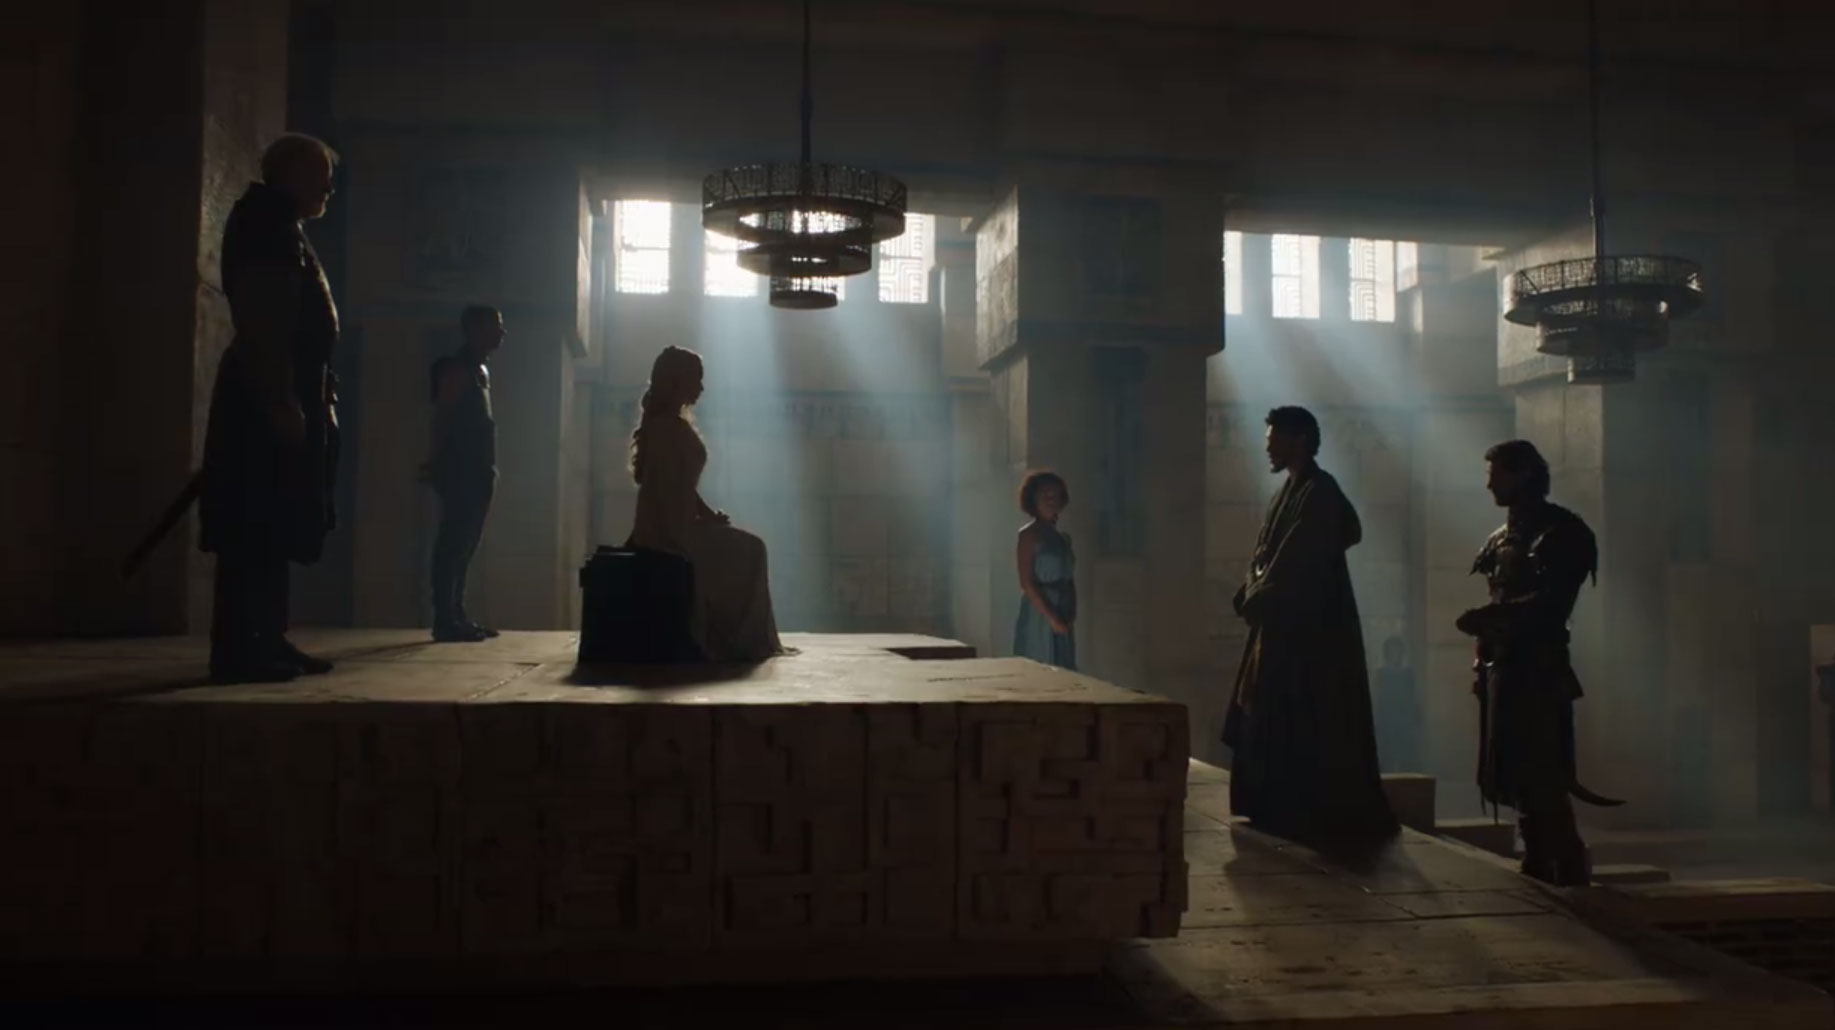 New Game of Thrones Season 5 trailer revealed